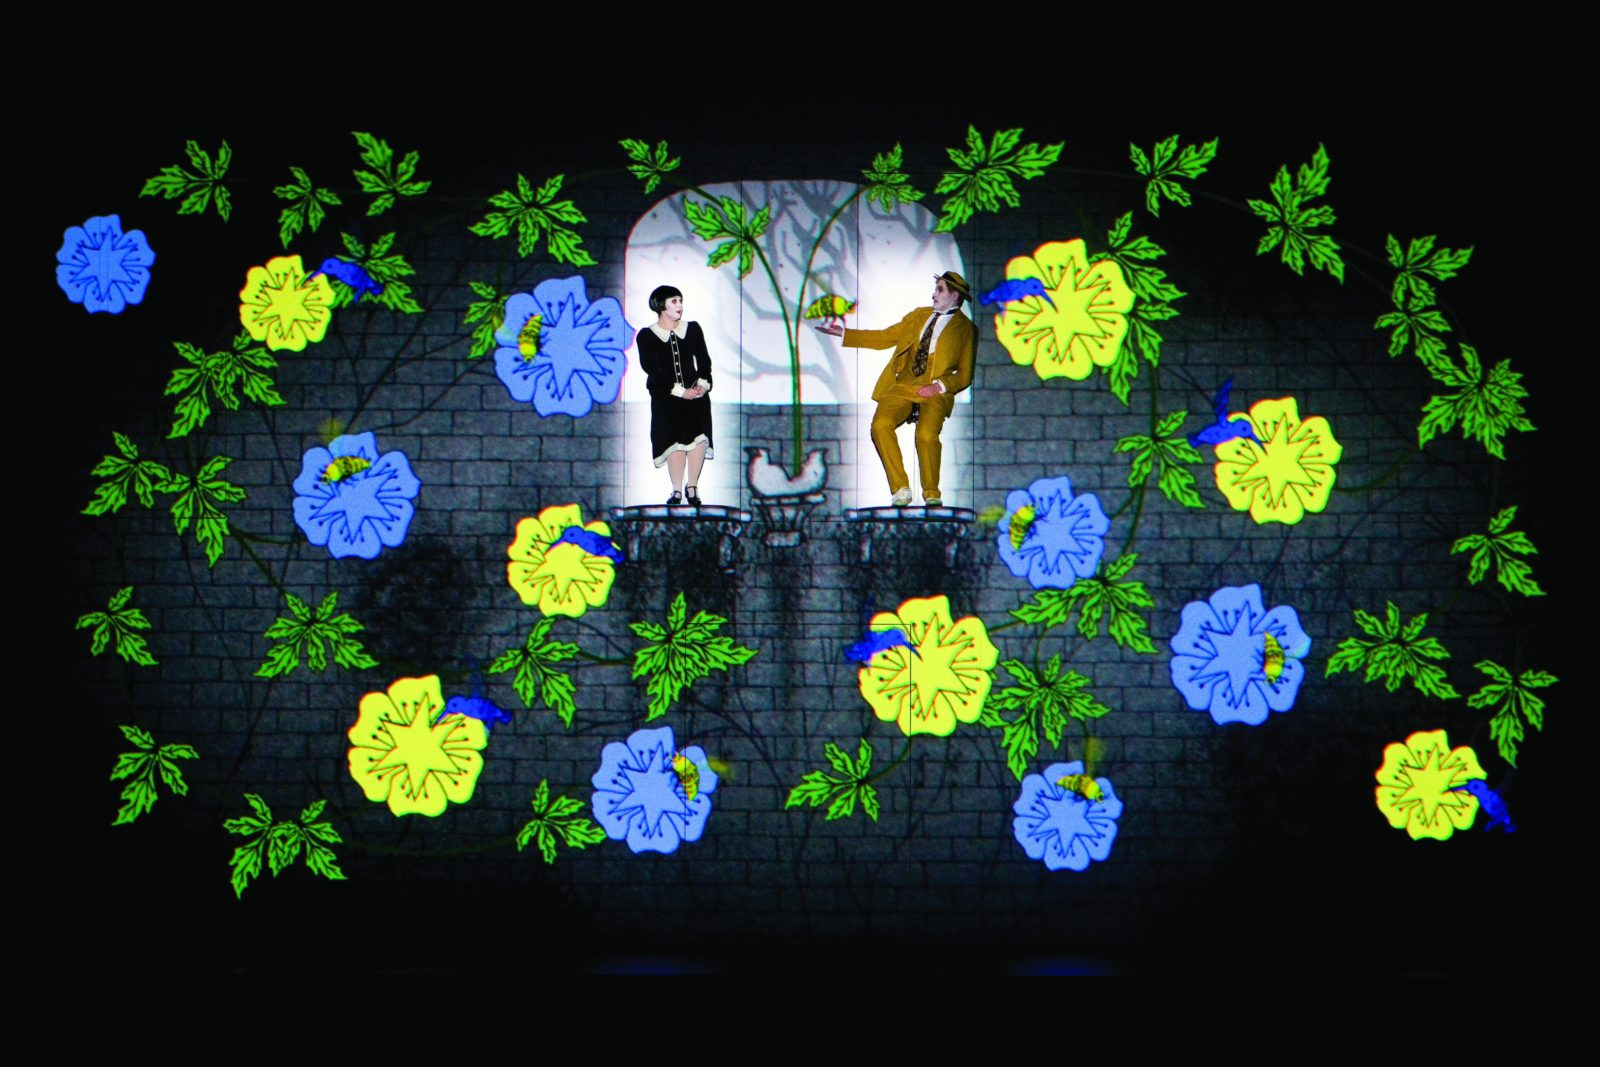 Perth Festival - Mozart's The Magic Flute, Perth, Western Australia